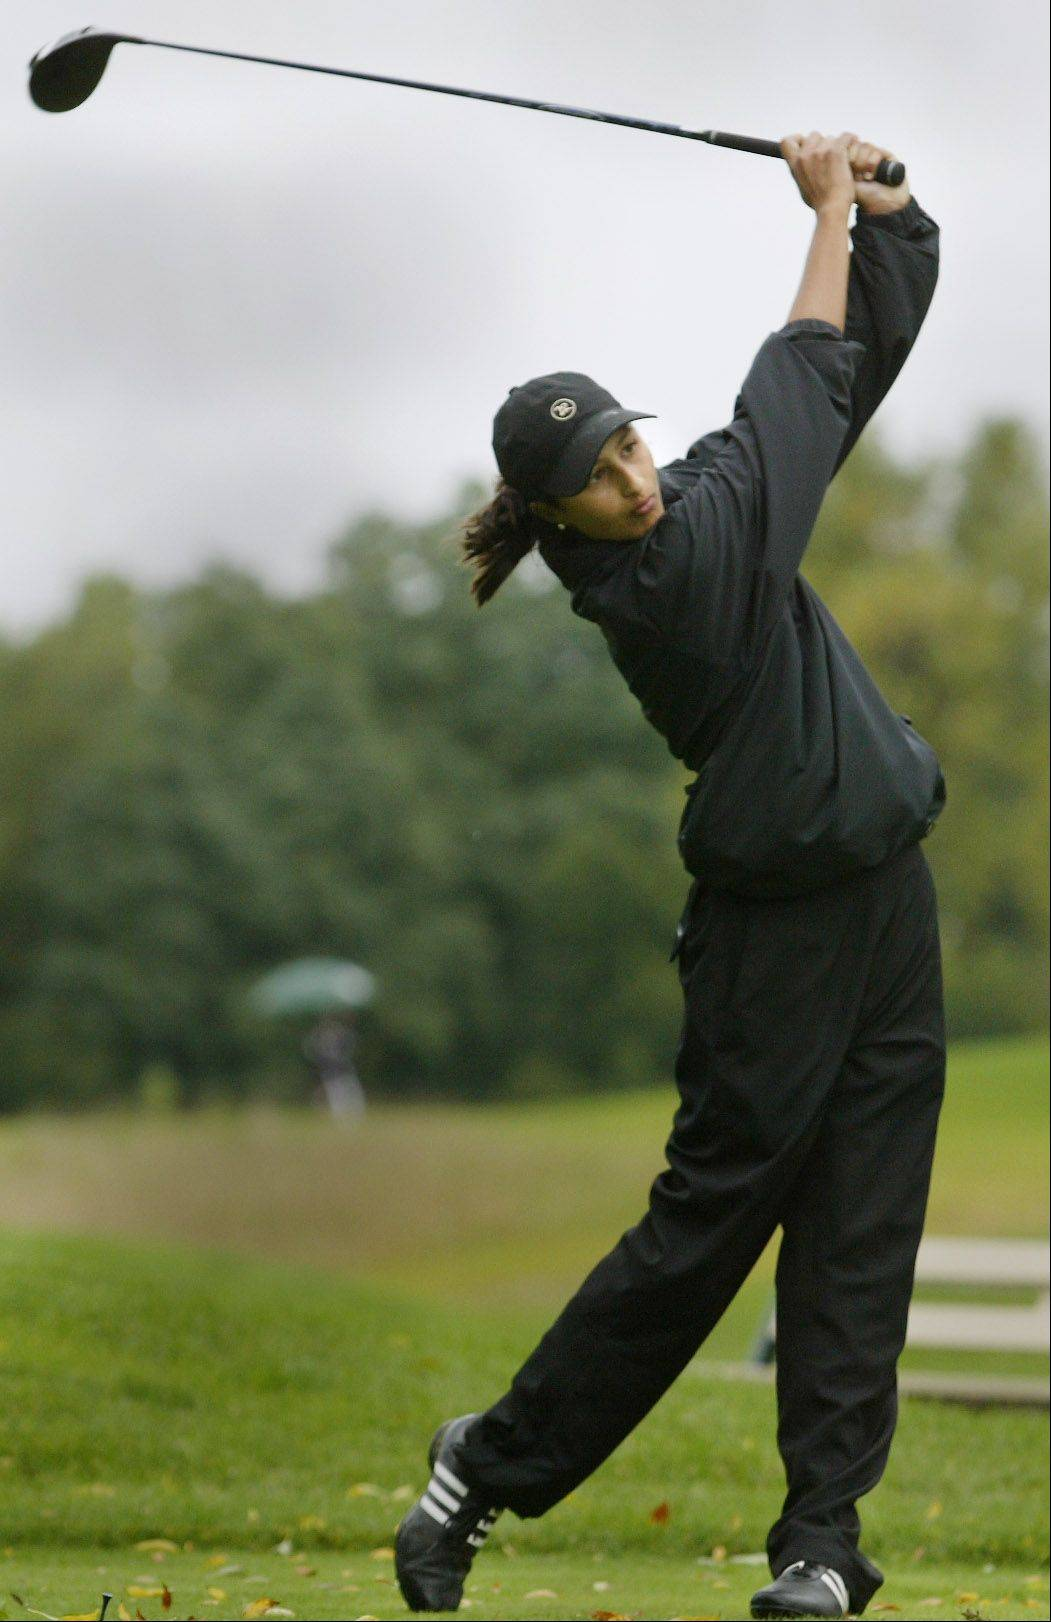 Barrington's Julia Calbi watches her tee shot on 9 Tuesday during the Mid-Suburban League girls golf match at Bonnie Dundee Golf Club in Carpentersville.